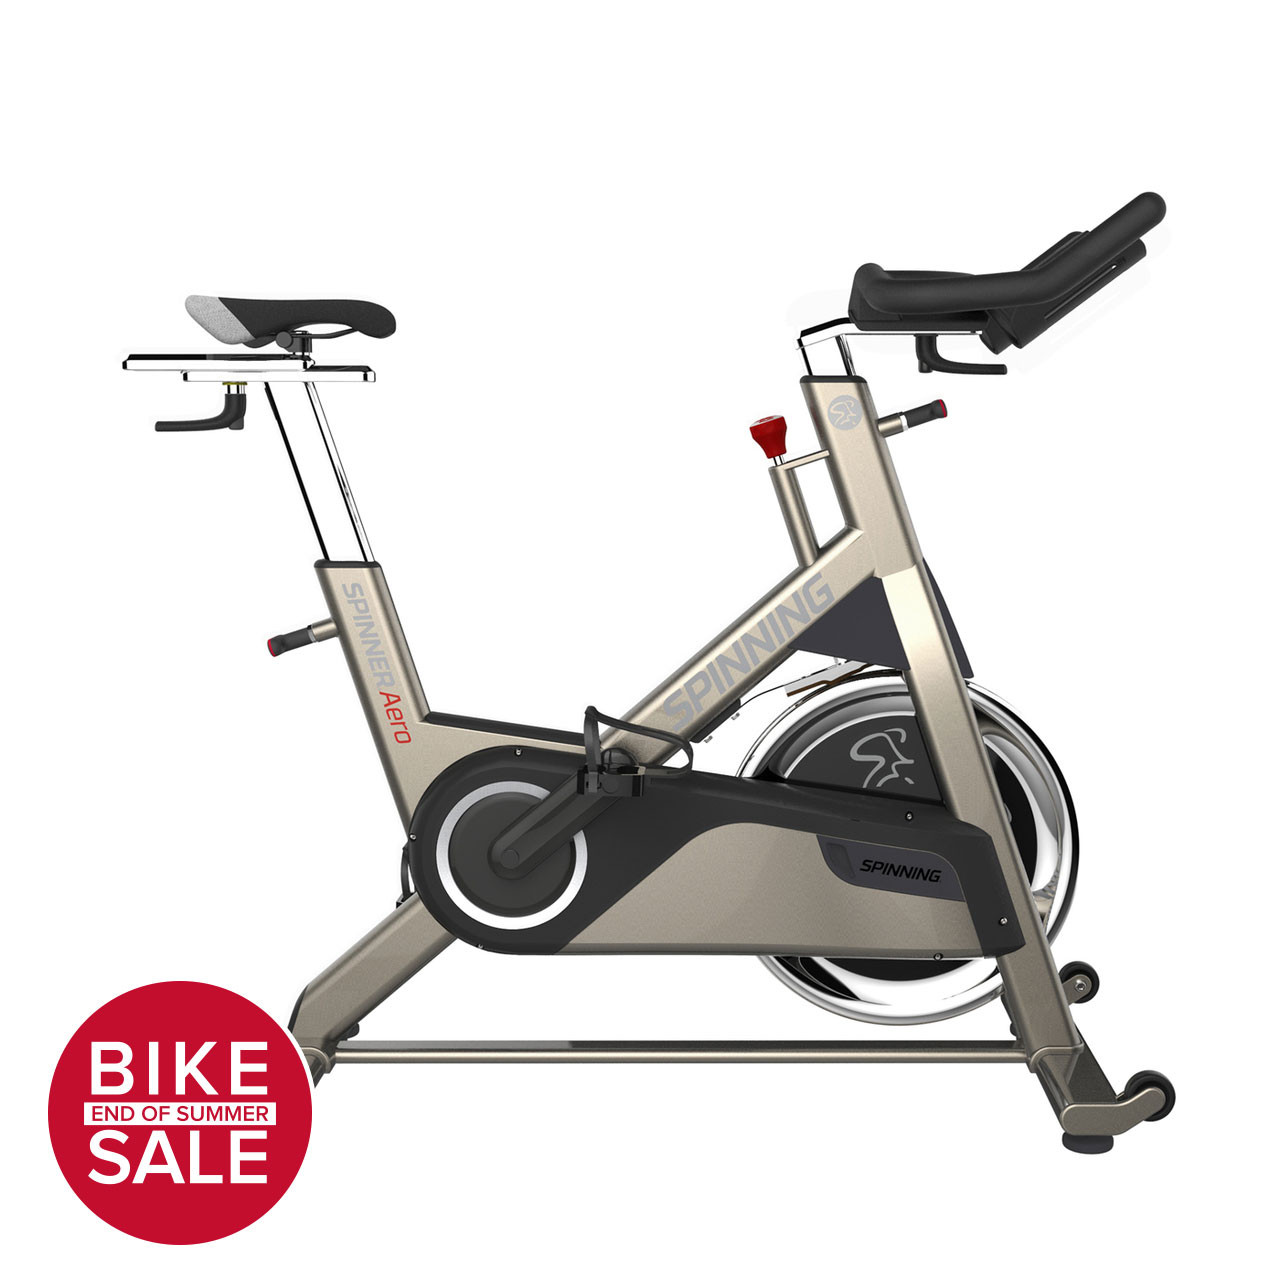 aero spin bike best home spin bike spinning. Black Bedroom Furniture Sets. Home Design Ideas